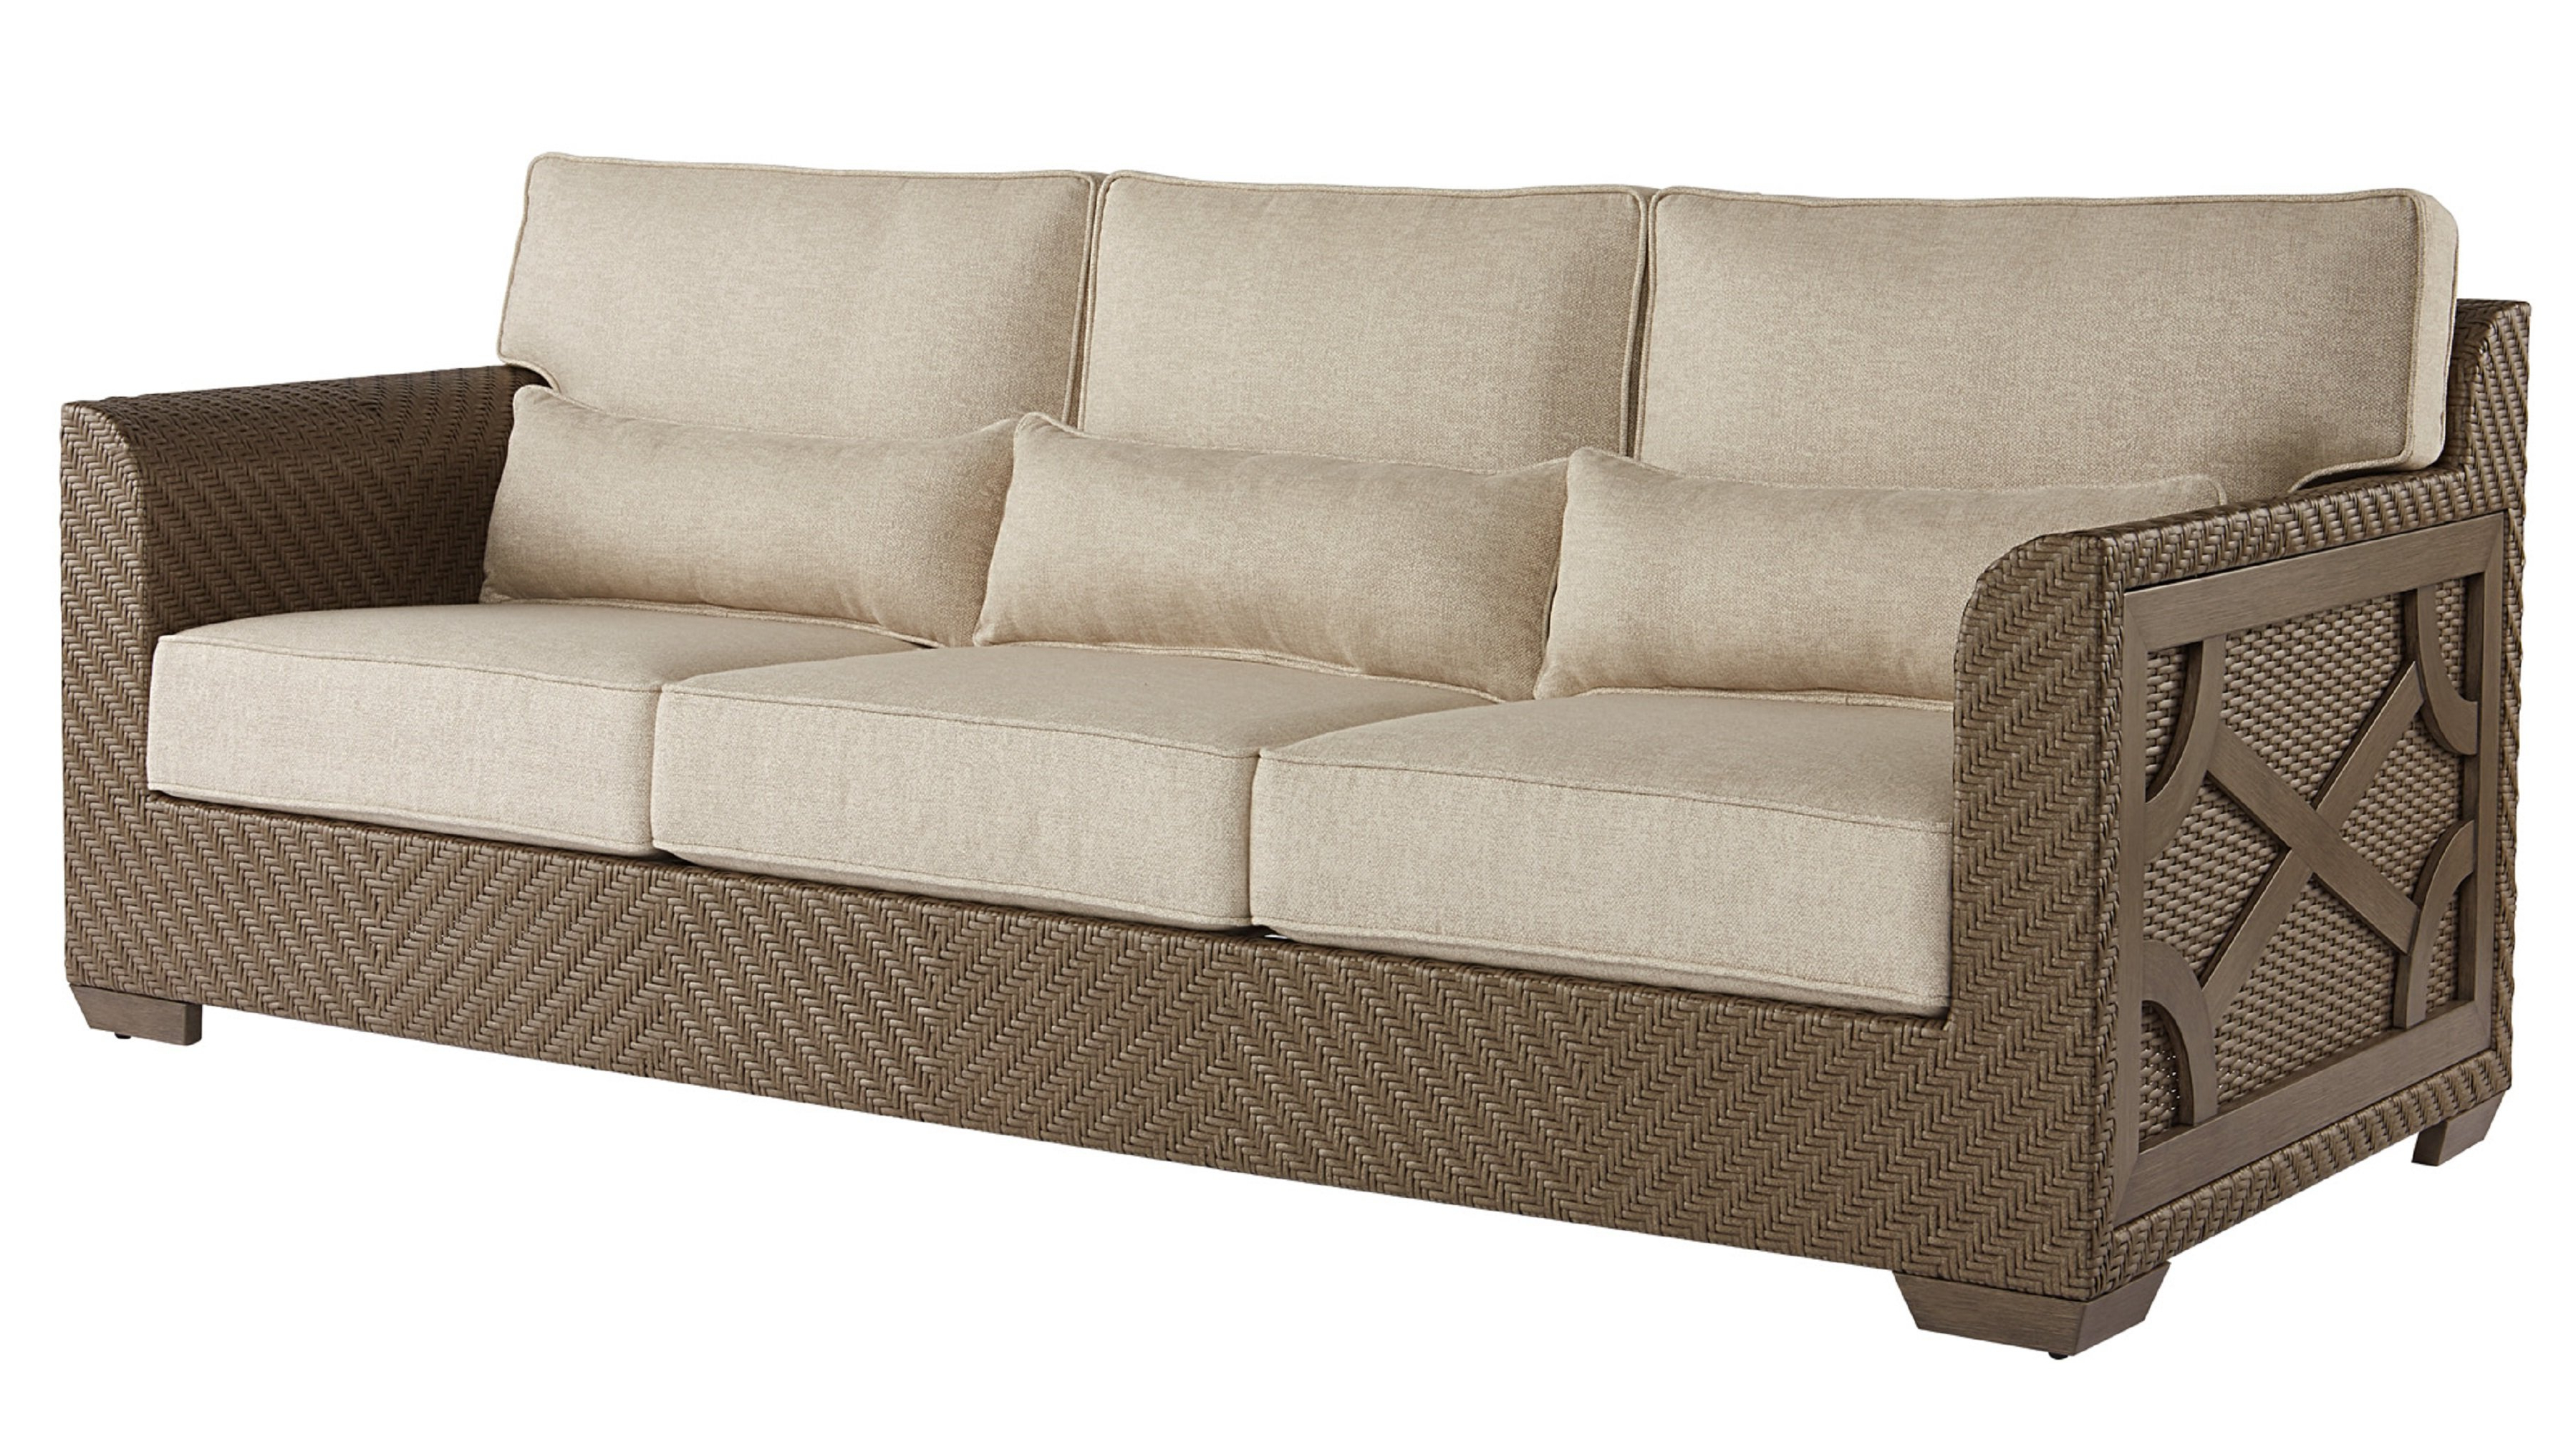 Astrid Wicker Patio Sofa With Cushions In Most Popular Loggins Patio Sofas With Cushions (View 2 of 20)